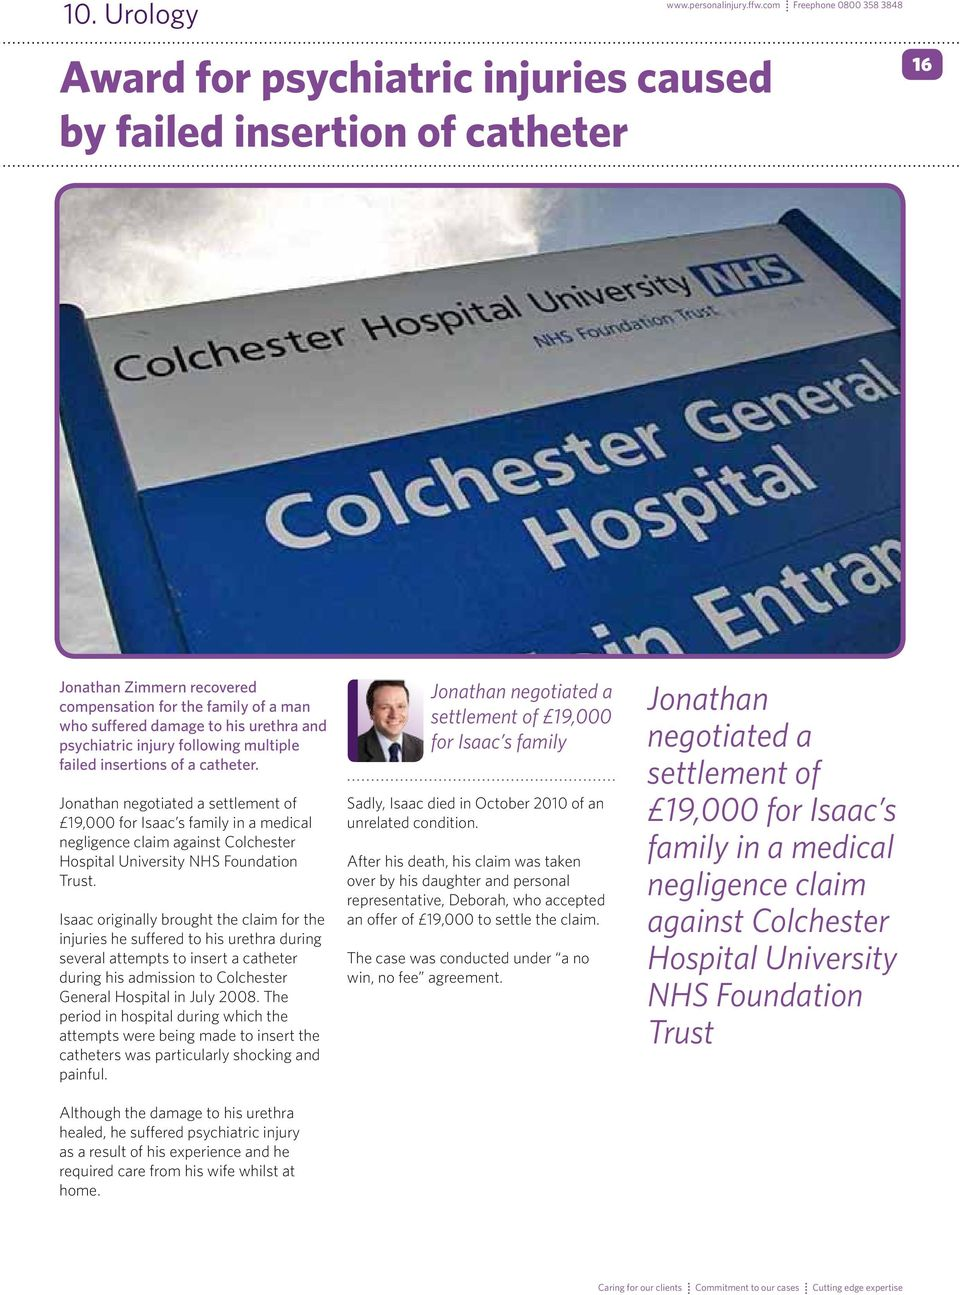 catheter. Jonathan negotiated a settlement of 19,000 for Isaac s family in a medical negligence claim against Colchester Hospital University NHS Foundation Trust.